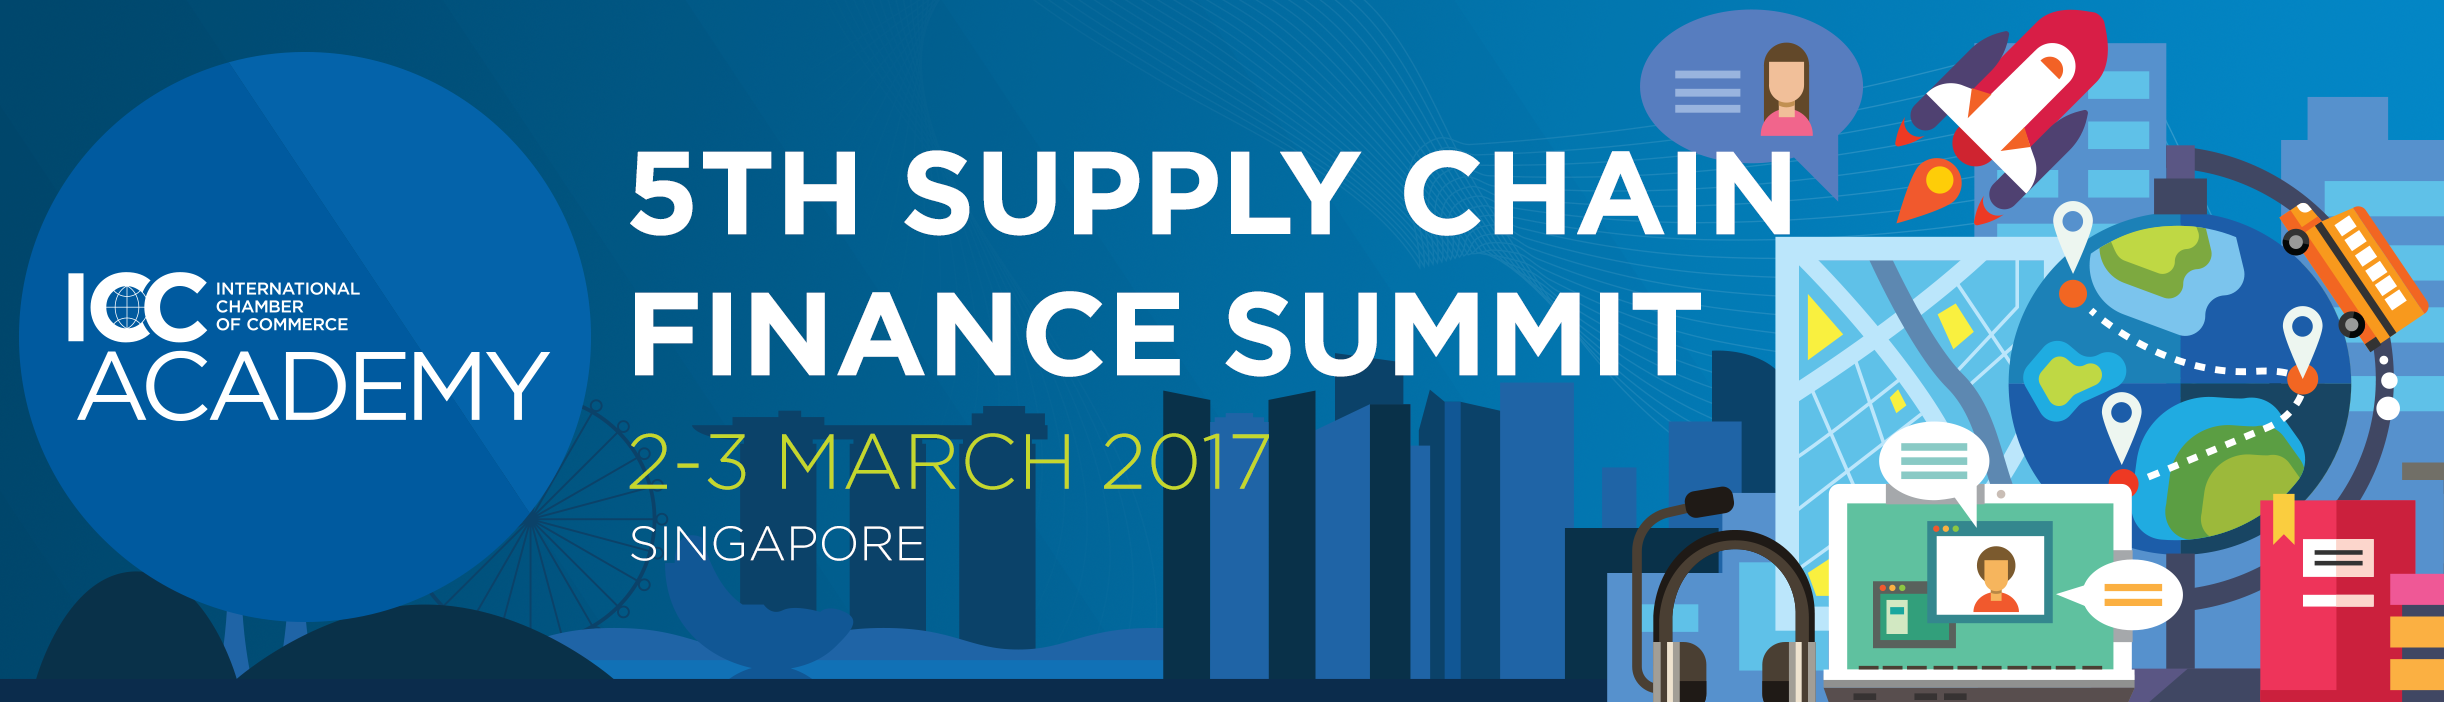 icc-academy-5th-supply-chain-finance-summit_source